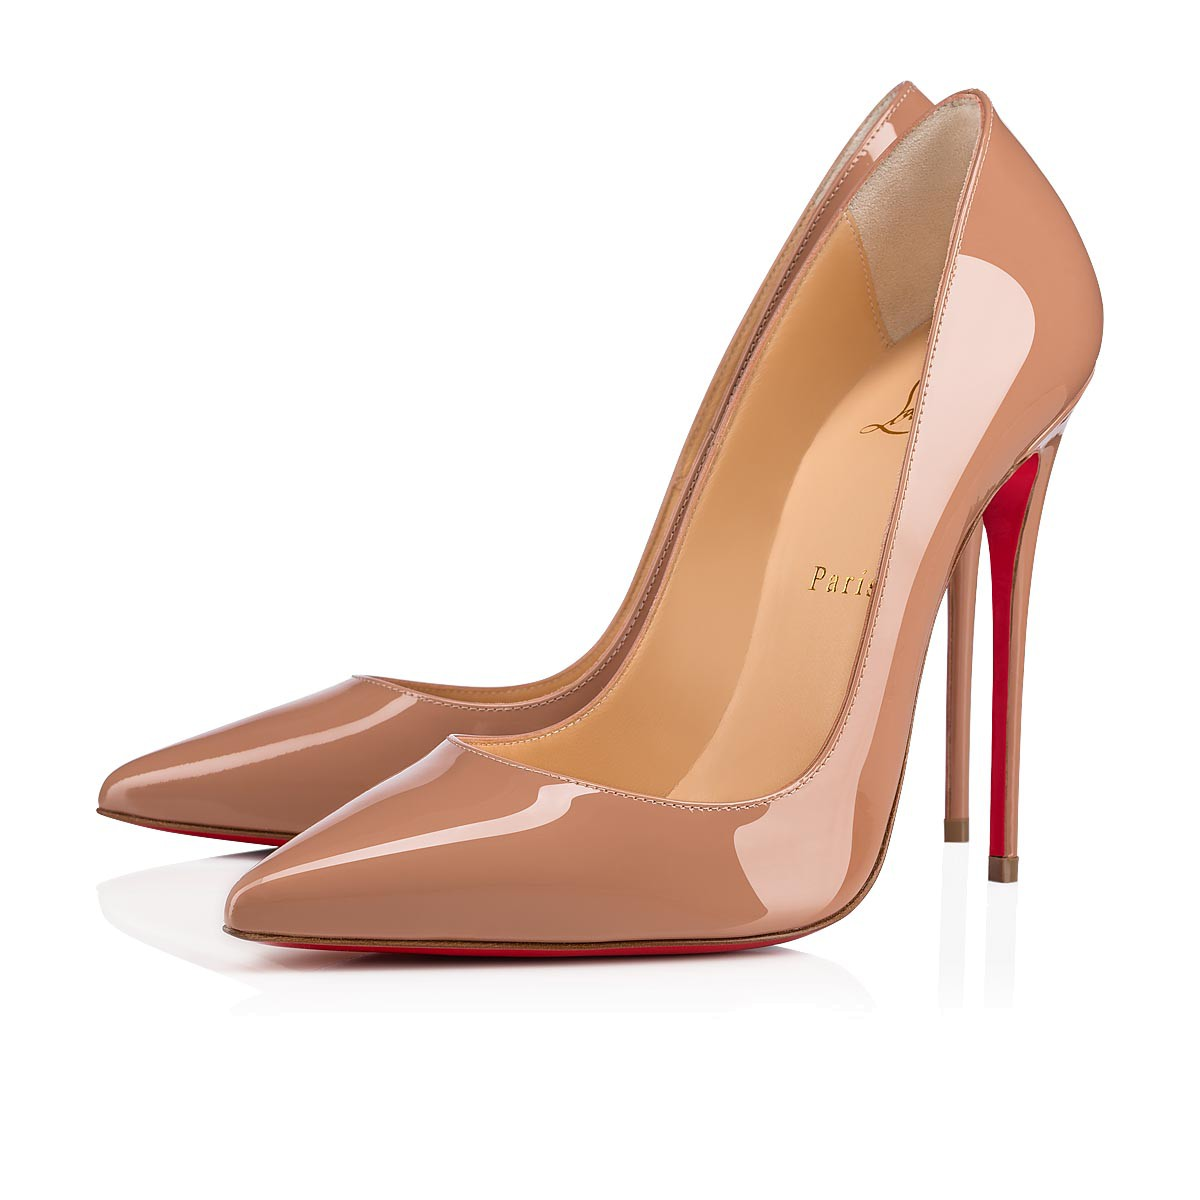 grossiste 41c8f 0ece9 So Kate 120 Nude Patent Leather - Women Shoes - Christian Louboutin